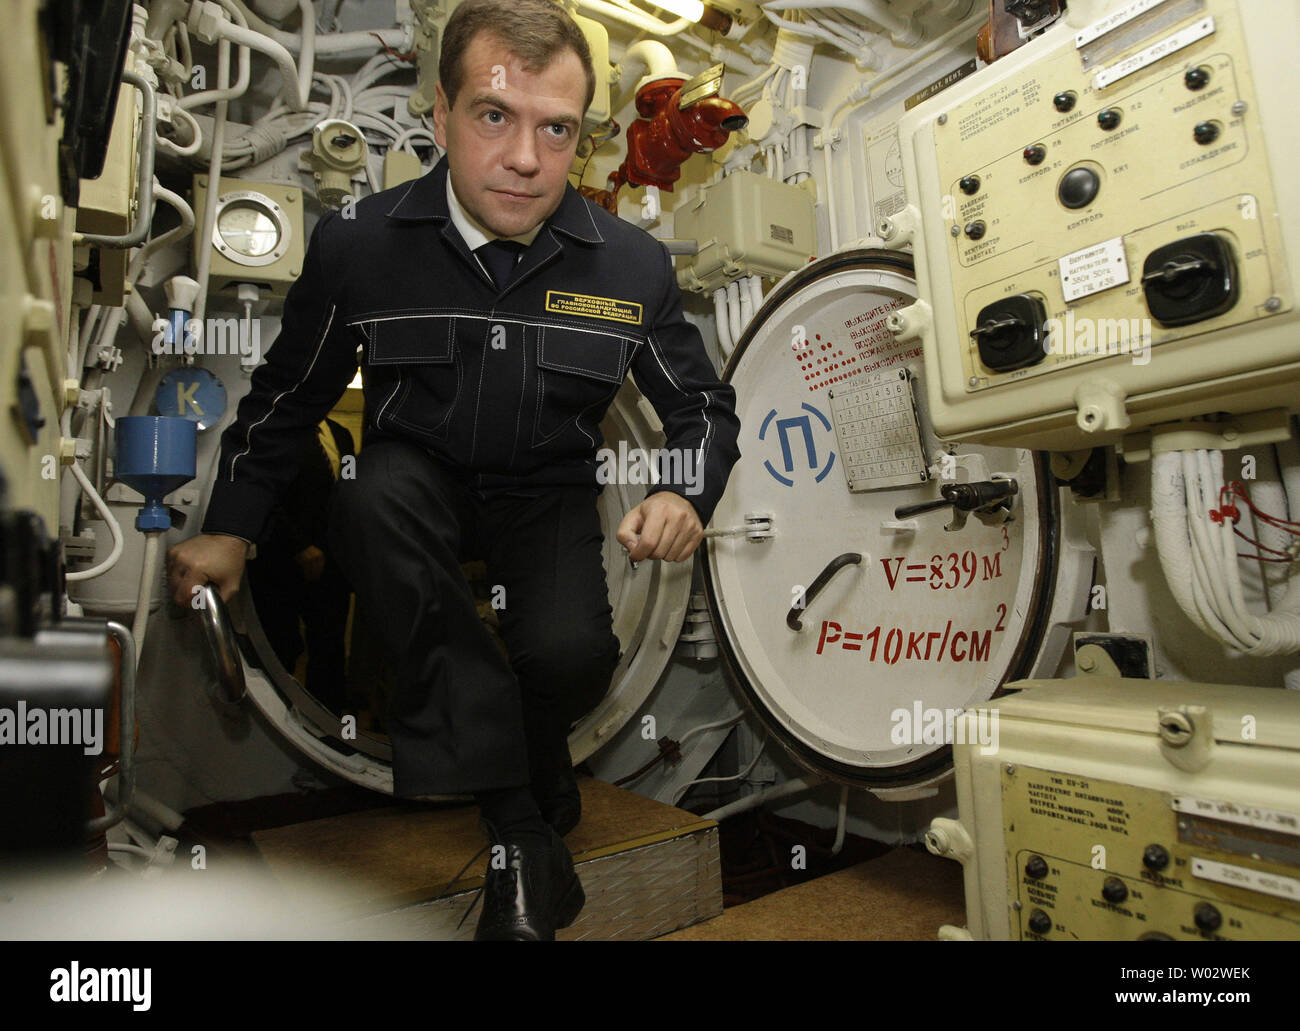 Russian President Dmitry Medvedev, wearing a NAVY uniform, visits the 'St. George the Victor' nuclear powered submarine at the Russian Pacific Fleet submarine base at Krasheninnikov Harbor on the Kamchatka Peninsula in the Russian Far East on September 25, 2008. (UPI Photo/Anatoli Zhdanov) - Stock Image